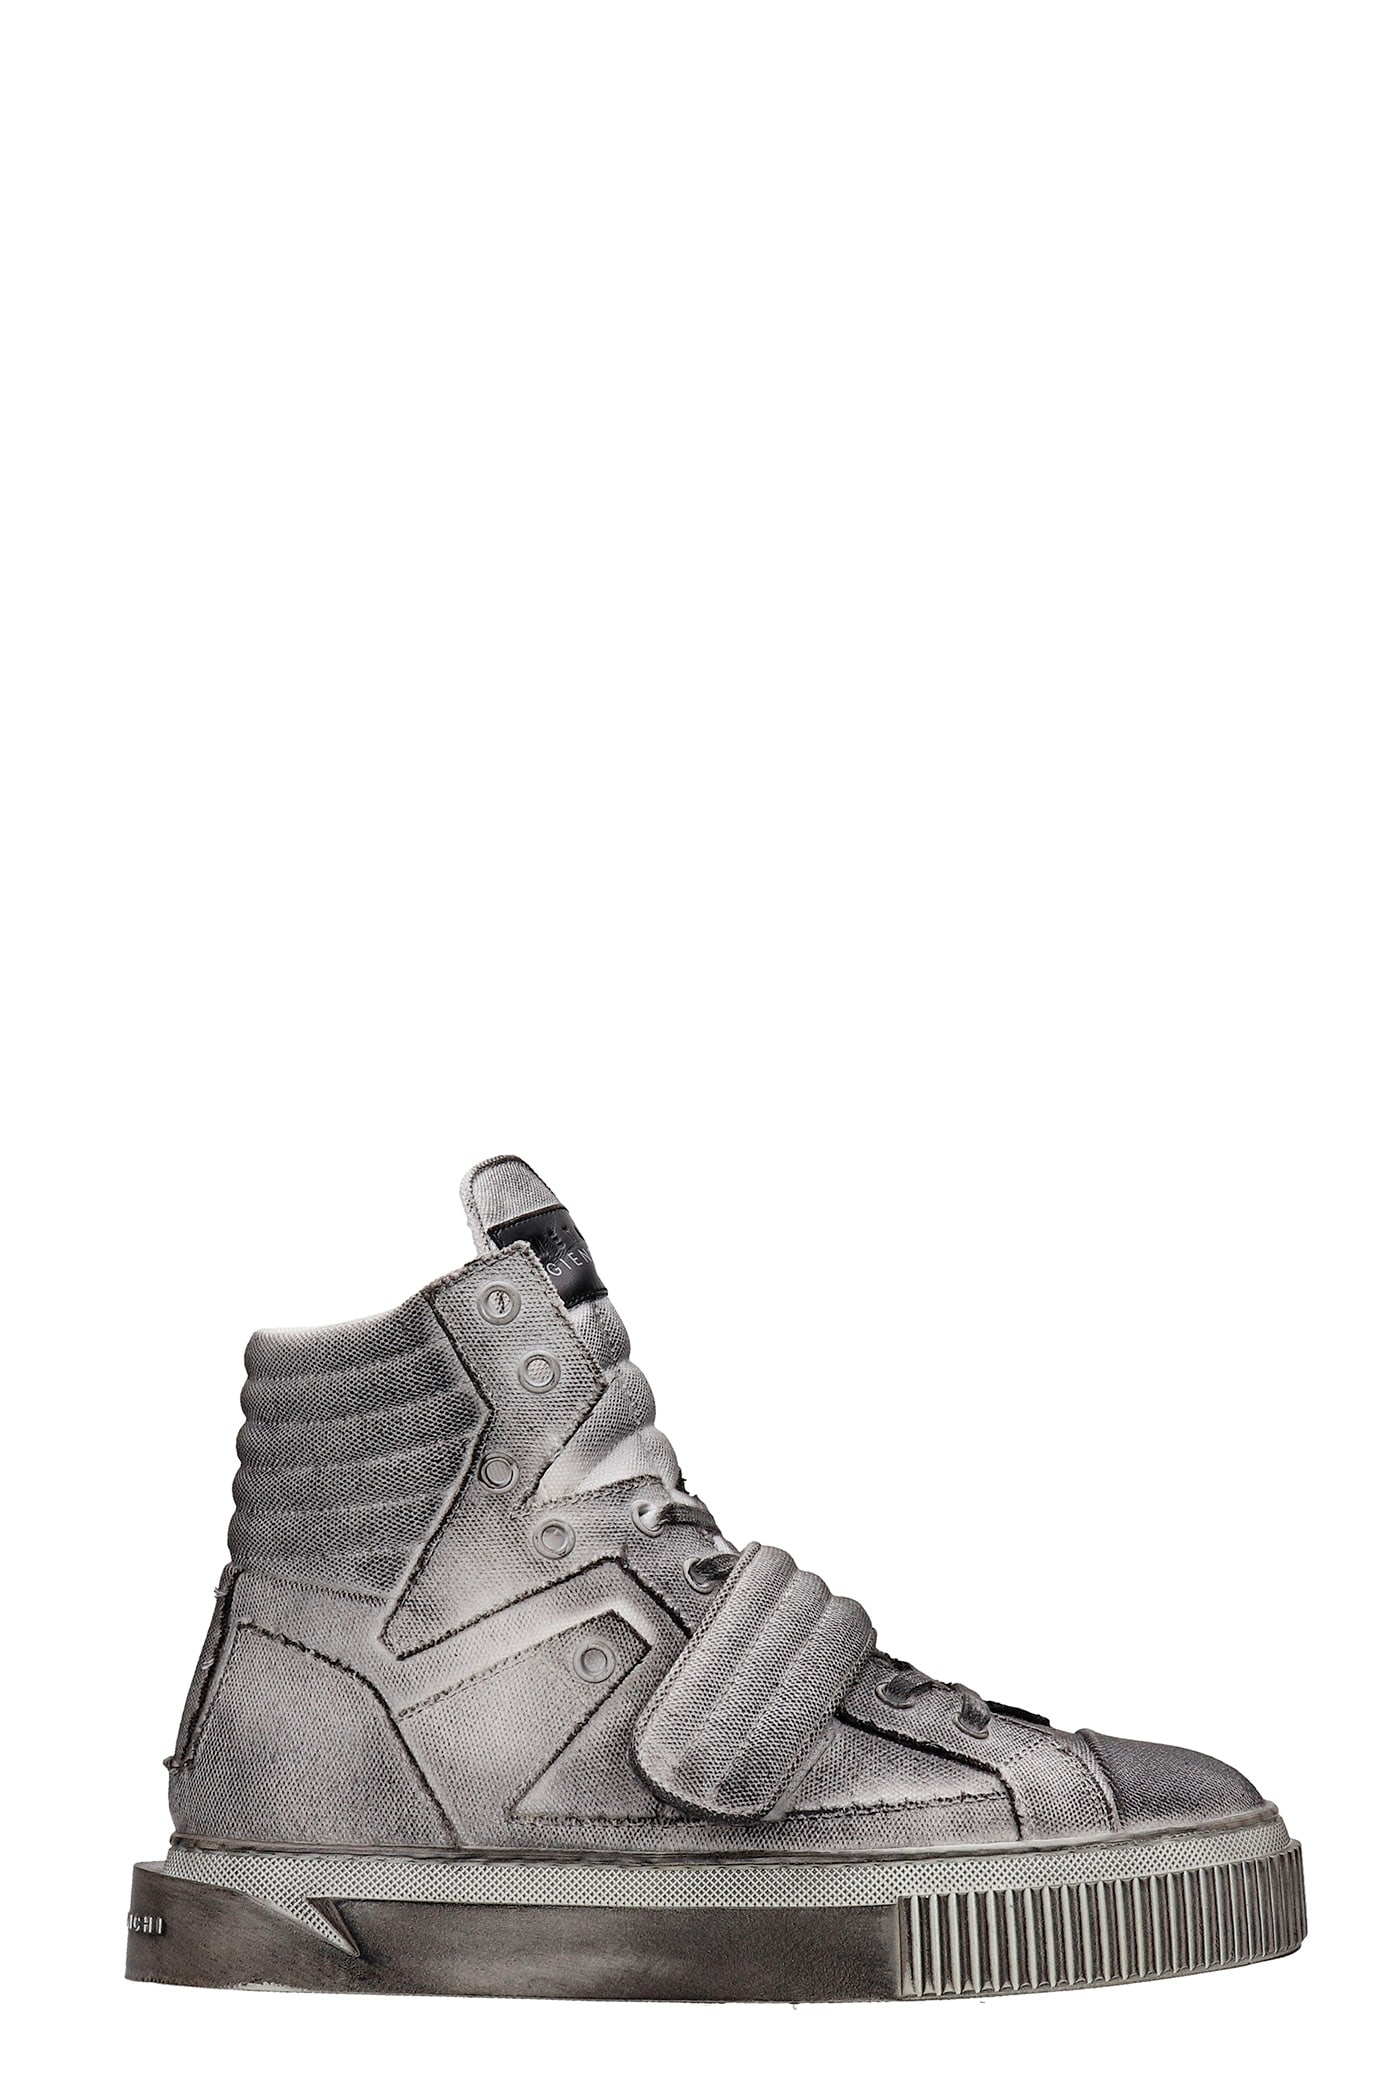 Hypnos Sneakers In White Canvas